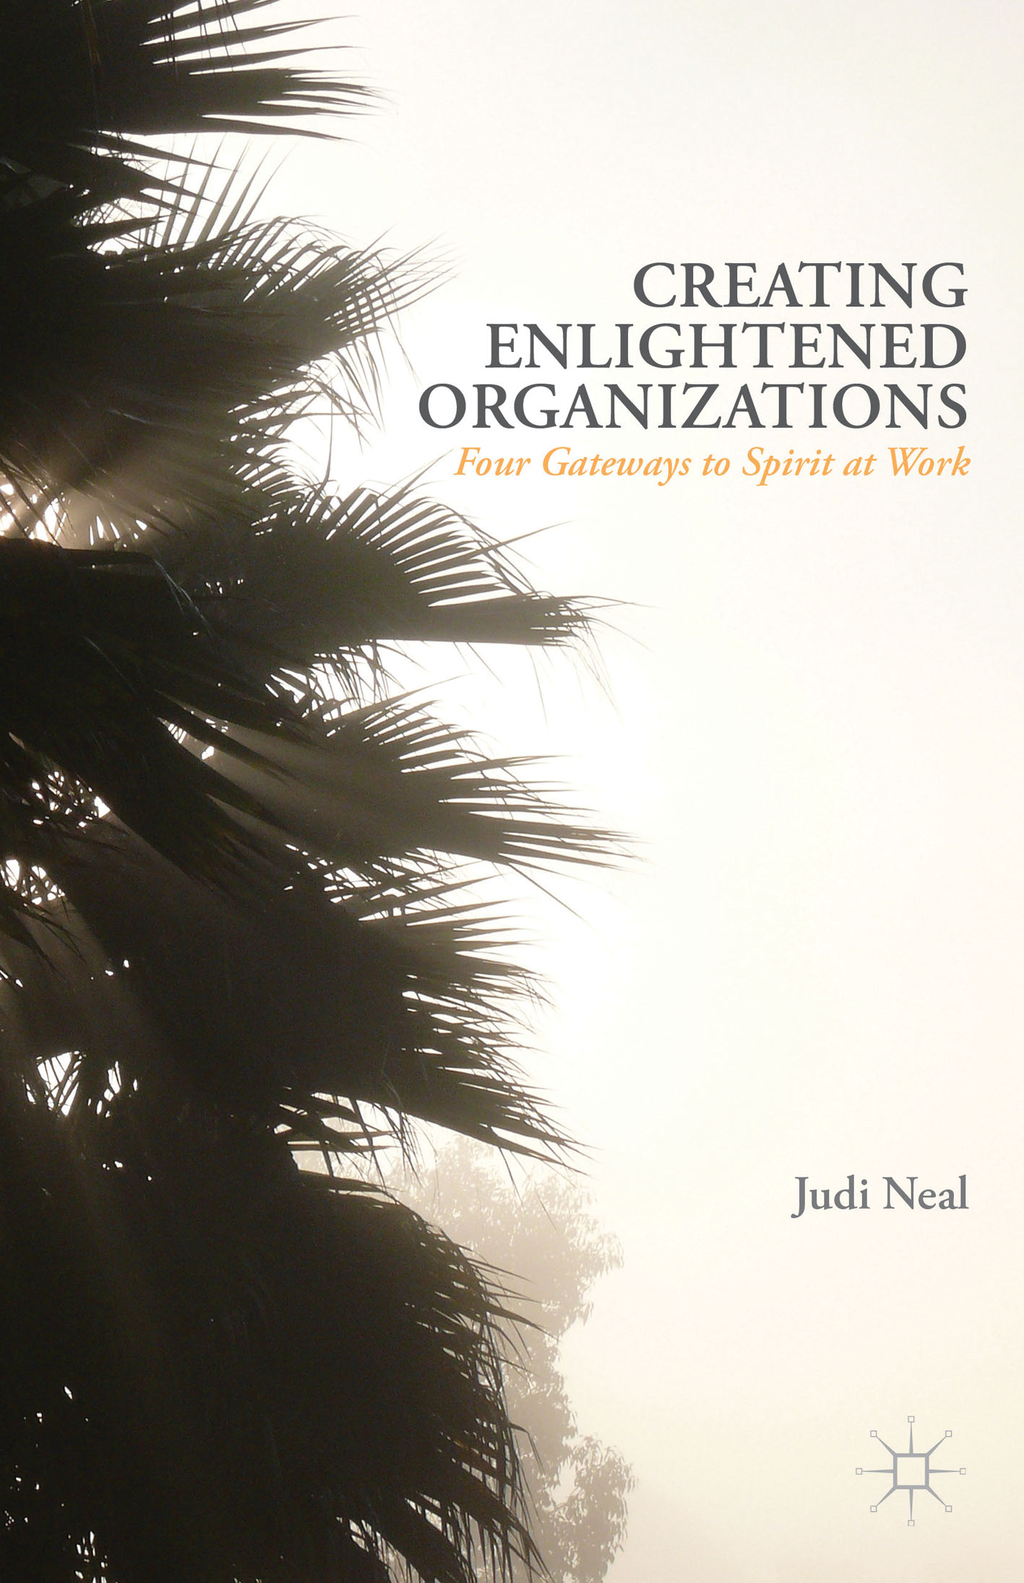 Creating Enlightened Organizations Four Gateways to Spirit at Work